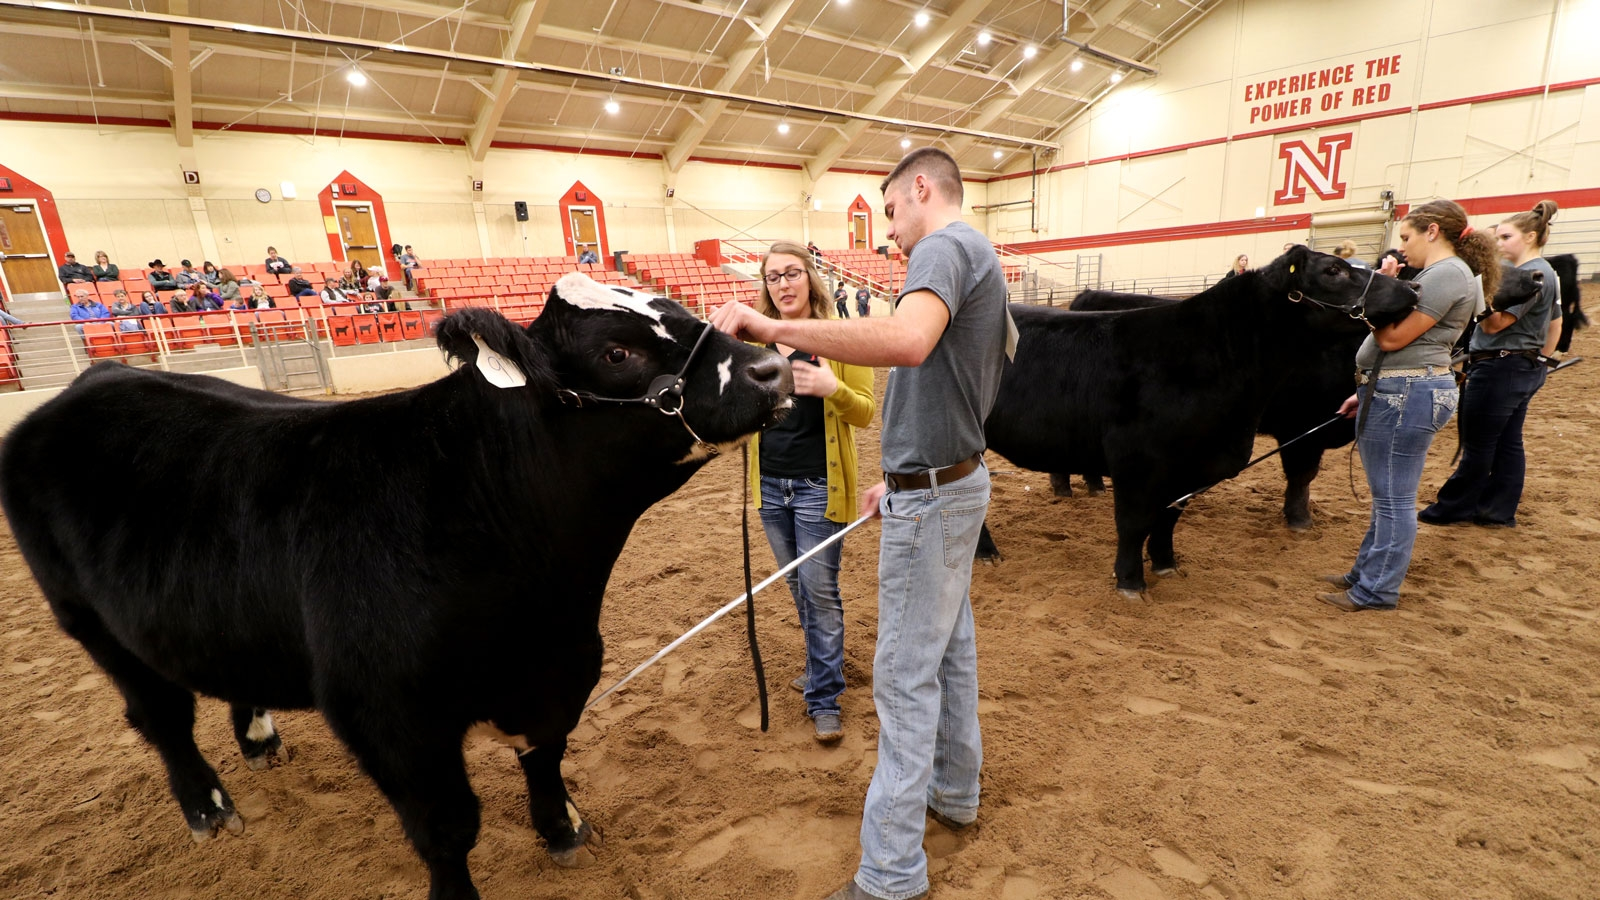 a group of students standing next to cattle in an arena